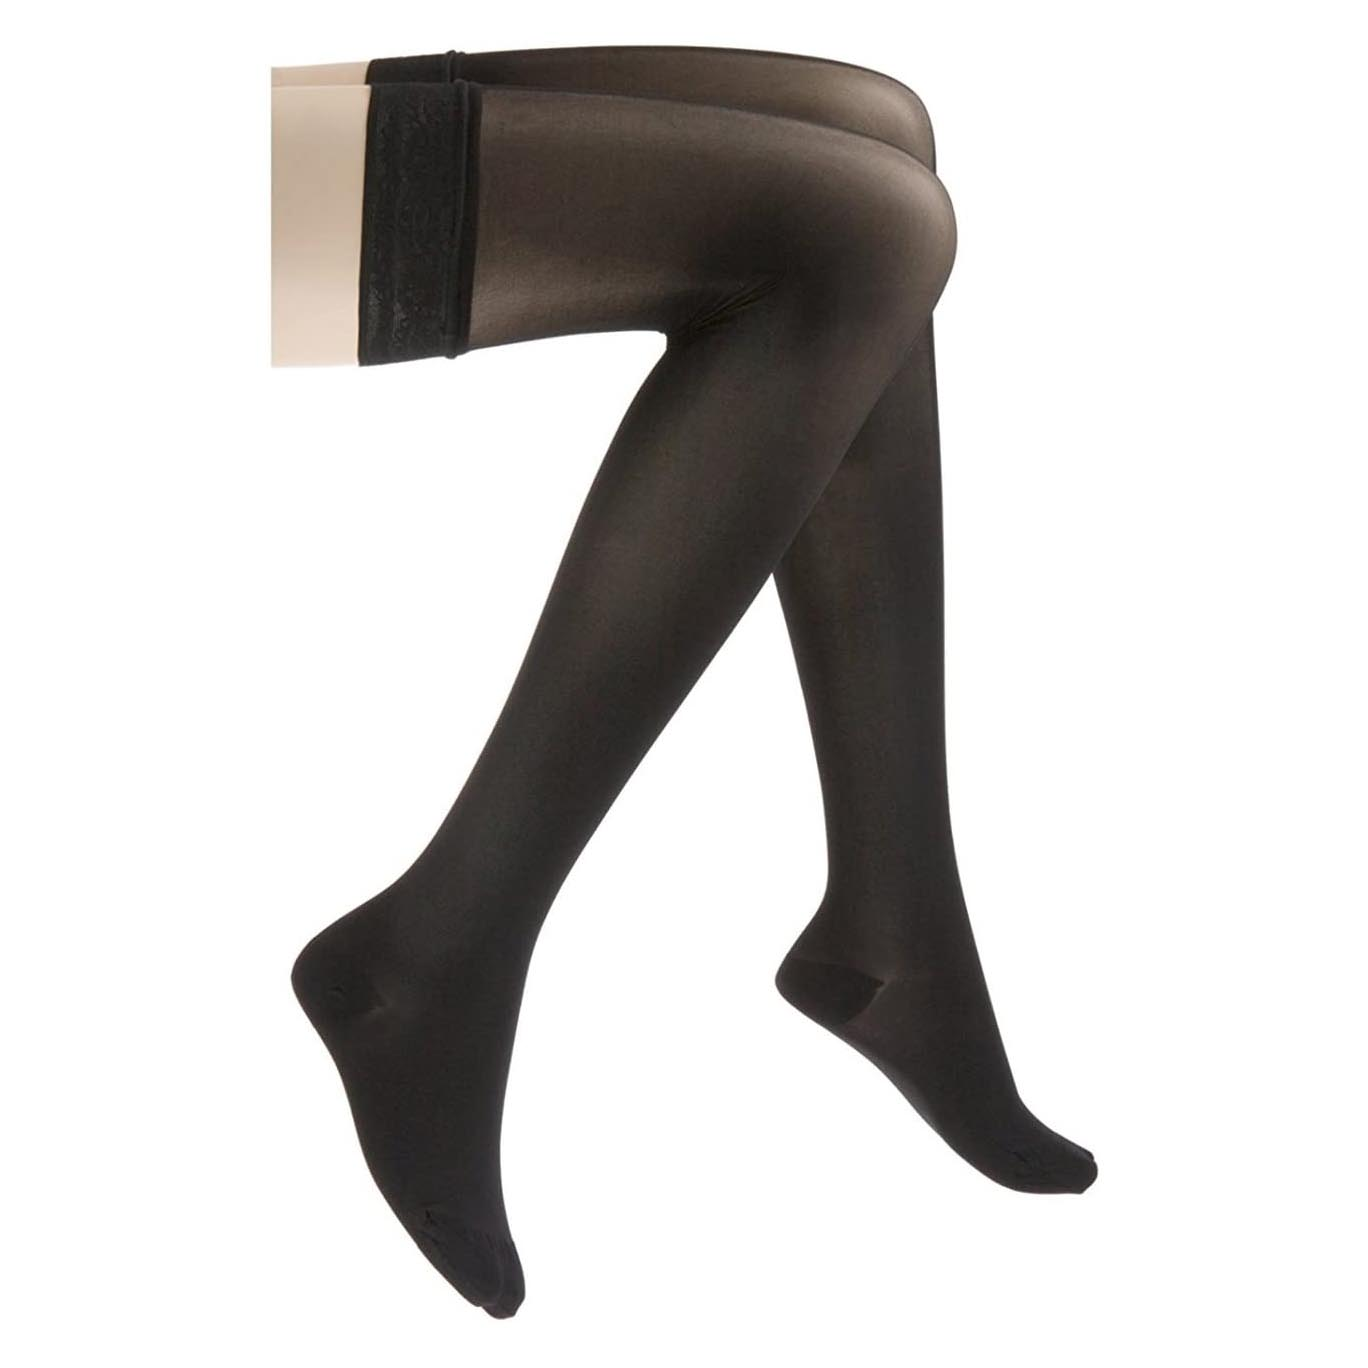 Jobst UltraSheer Thigh High Compression Stocking